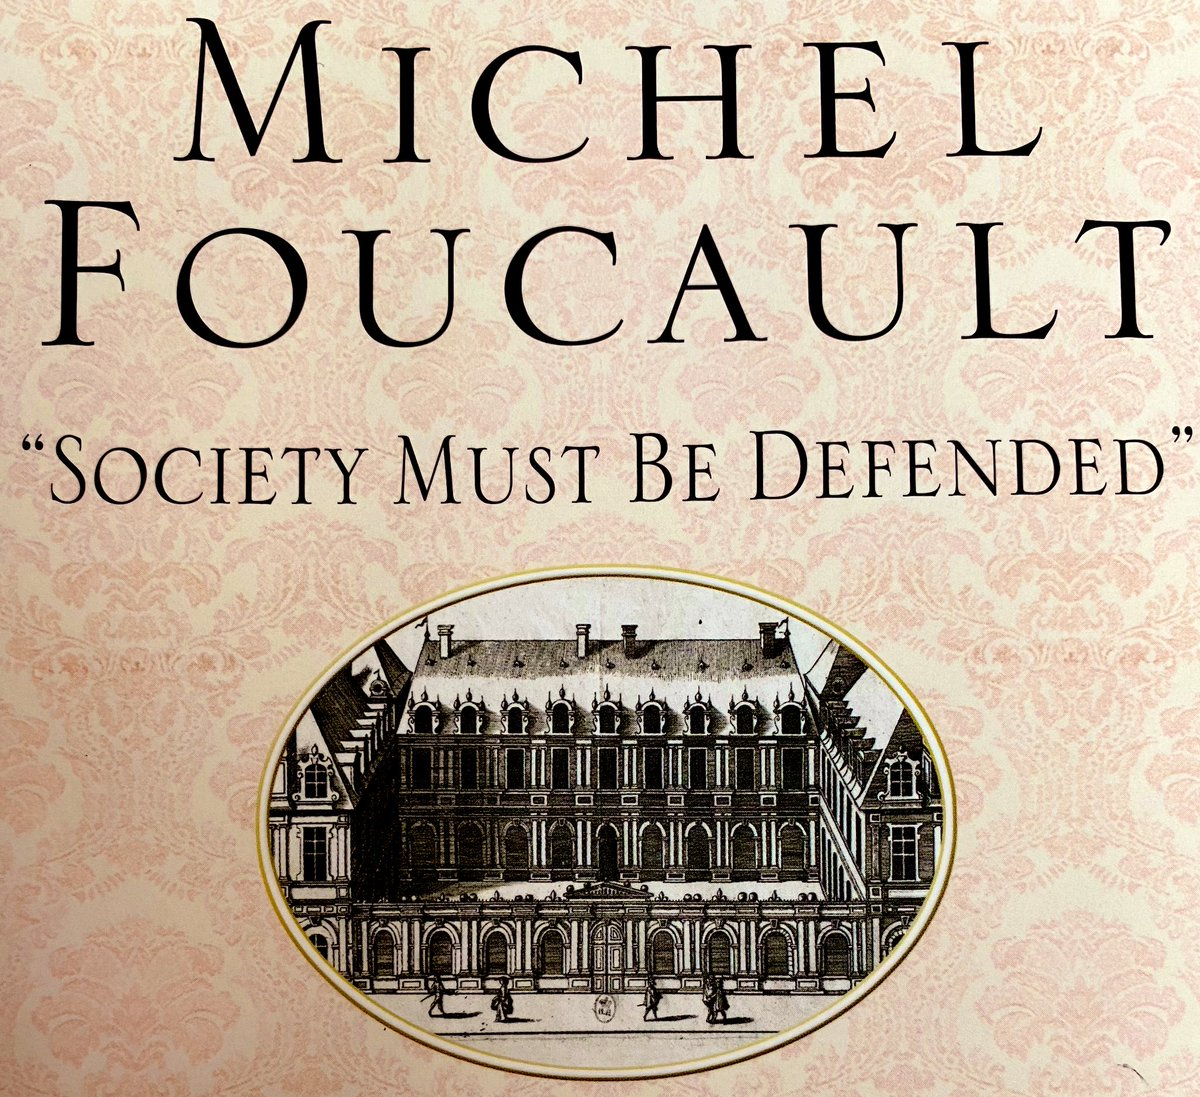 I've read a lot of #Foucault, but mostly in chunks. In my experience it's the kind of thing that #gradschool professors always assume you already read in another class, so you never do. Looking forward to digging into more of his work on my own. #SocietyMustBeDefended https://t.co/BxSKVigpoc